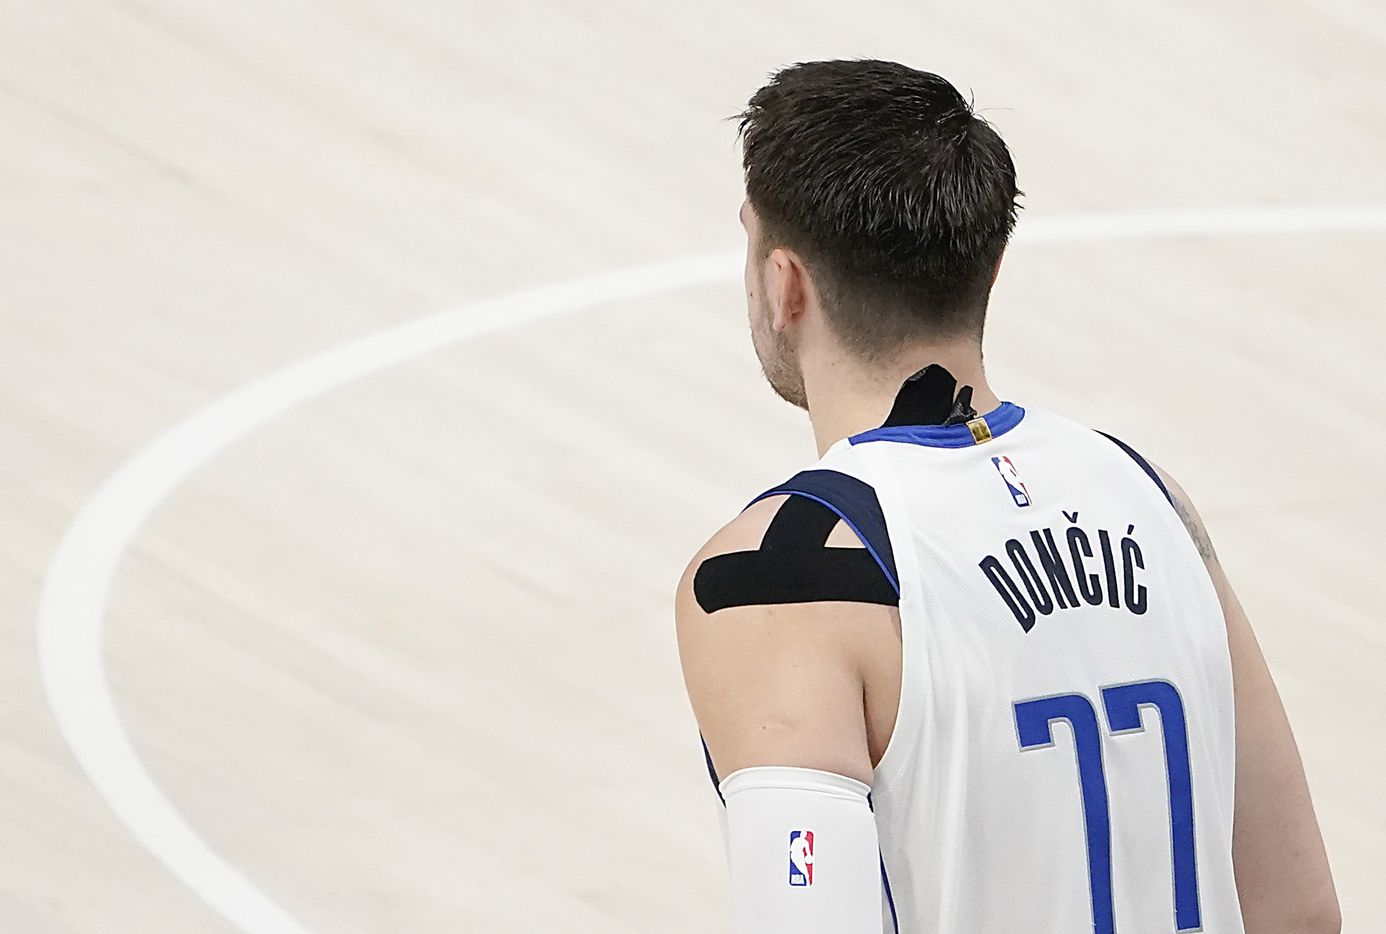 Dallas Mavericks guard Luka Doncic (77) wears tape on his shoulder and neck during the fourth quarter of an NBA playoff basketball game against the LA Clippers at American Airlines Center on Sunday, May 30, 2021, in Dallas.  The Clippers won the game 106-81.